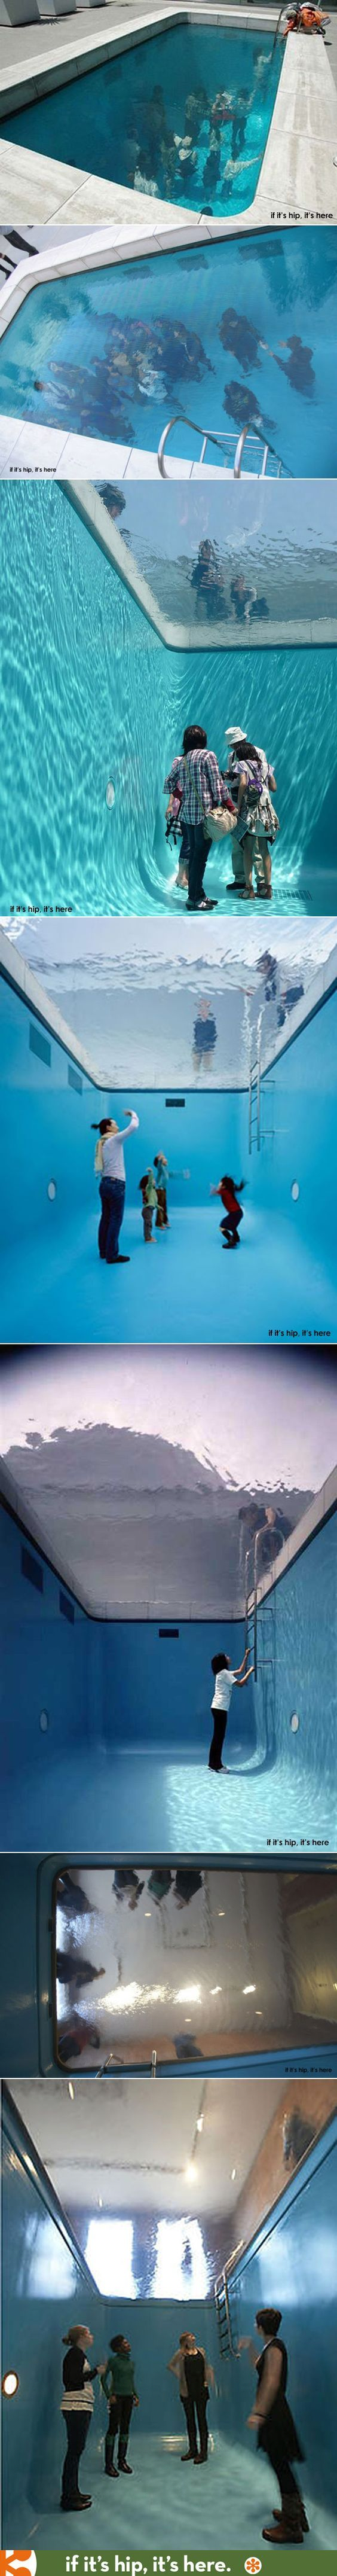 This Fake Pool is an art installation. Learn all about it at the link.: